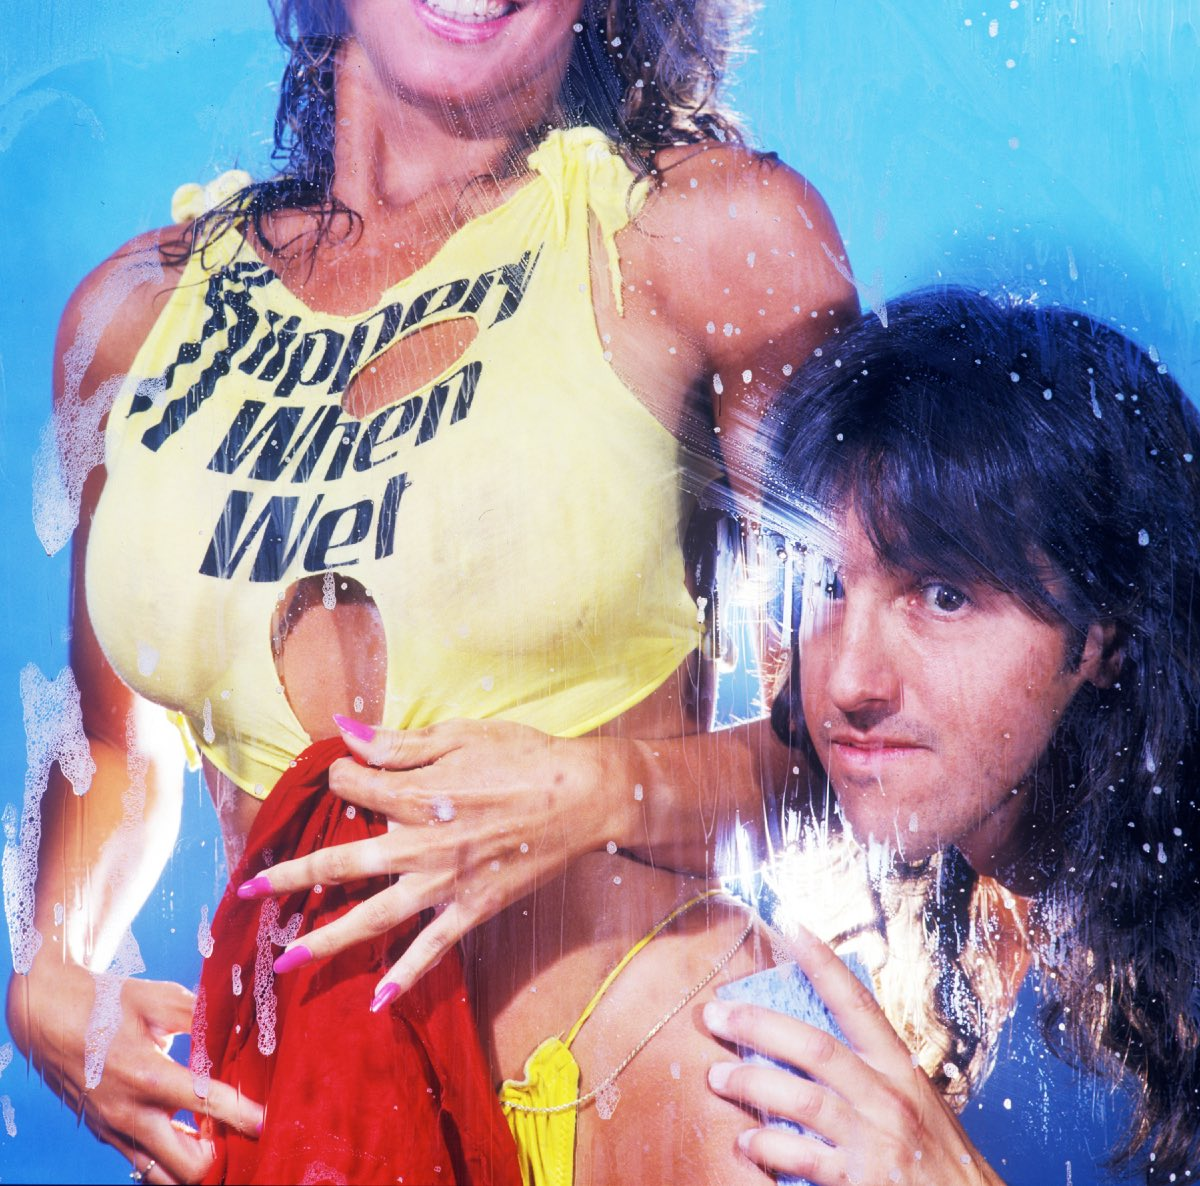 Angela and Mark Weiss, Slippery When Wet album cover shoot, 1986